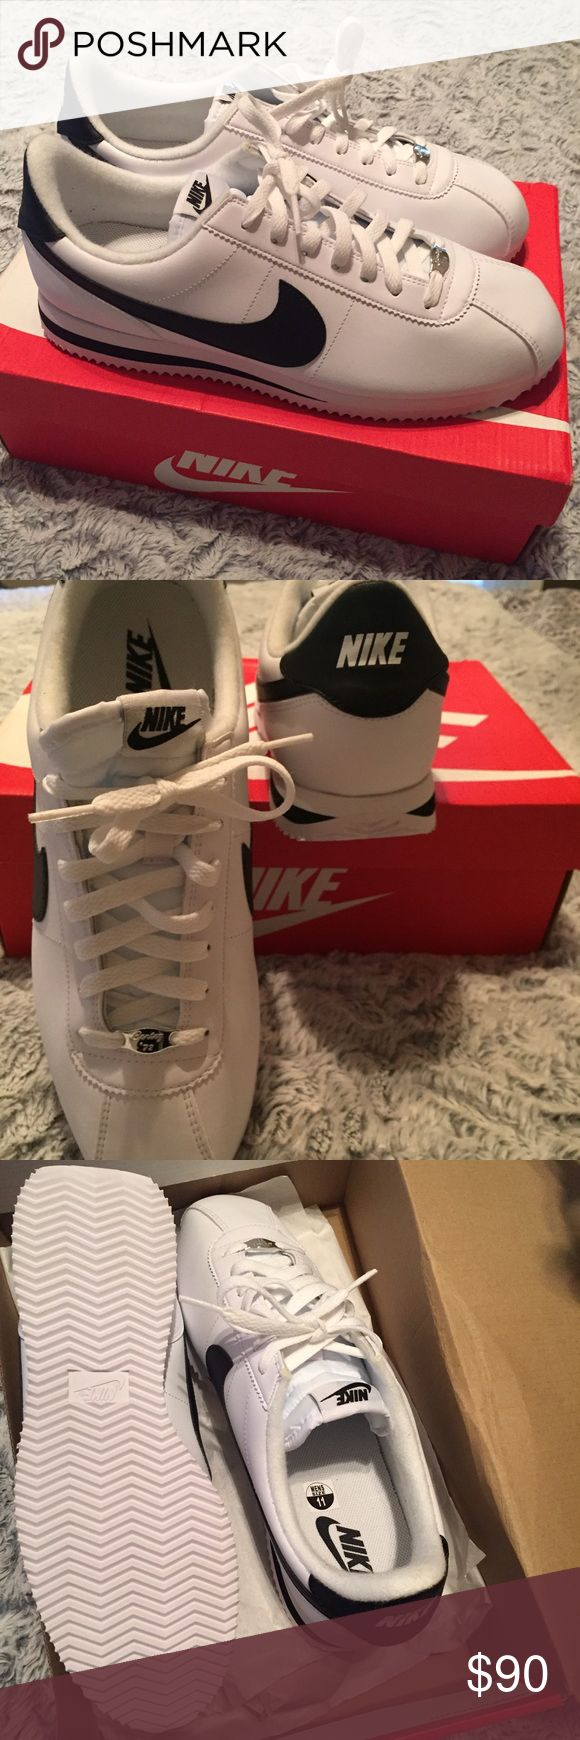 Nike Cortez '72 NIB Men-11 Women-13 Brand New in Box Nike Cortez Basic Leather White/Metallic Silver/Black. 11 in Men or 13 in Women. They say to get a half-size up in these, so if you're a 10.5-11 Men or 12.5-13 Women, these will fit. Silver embellishment reads Cortez '72. These have never been worn. He found some in gray instead. These are hard to find in this size and retail in an updated version on Nike.com for $115. I prefer the old school style...of everything in general.  Nike Shoes…